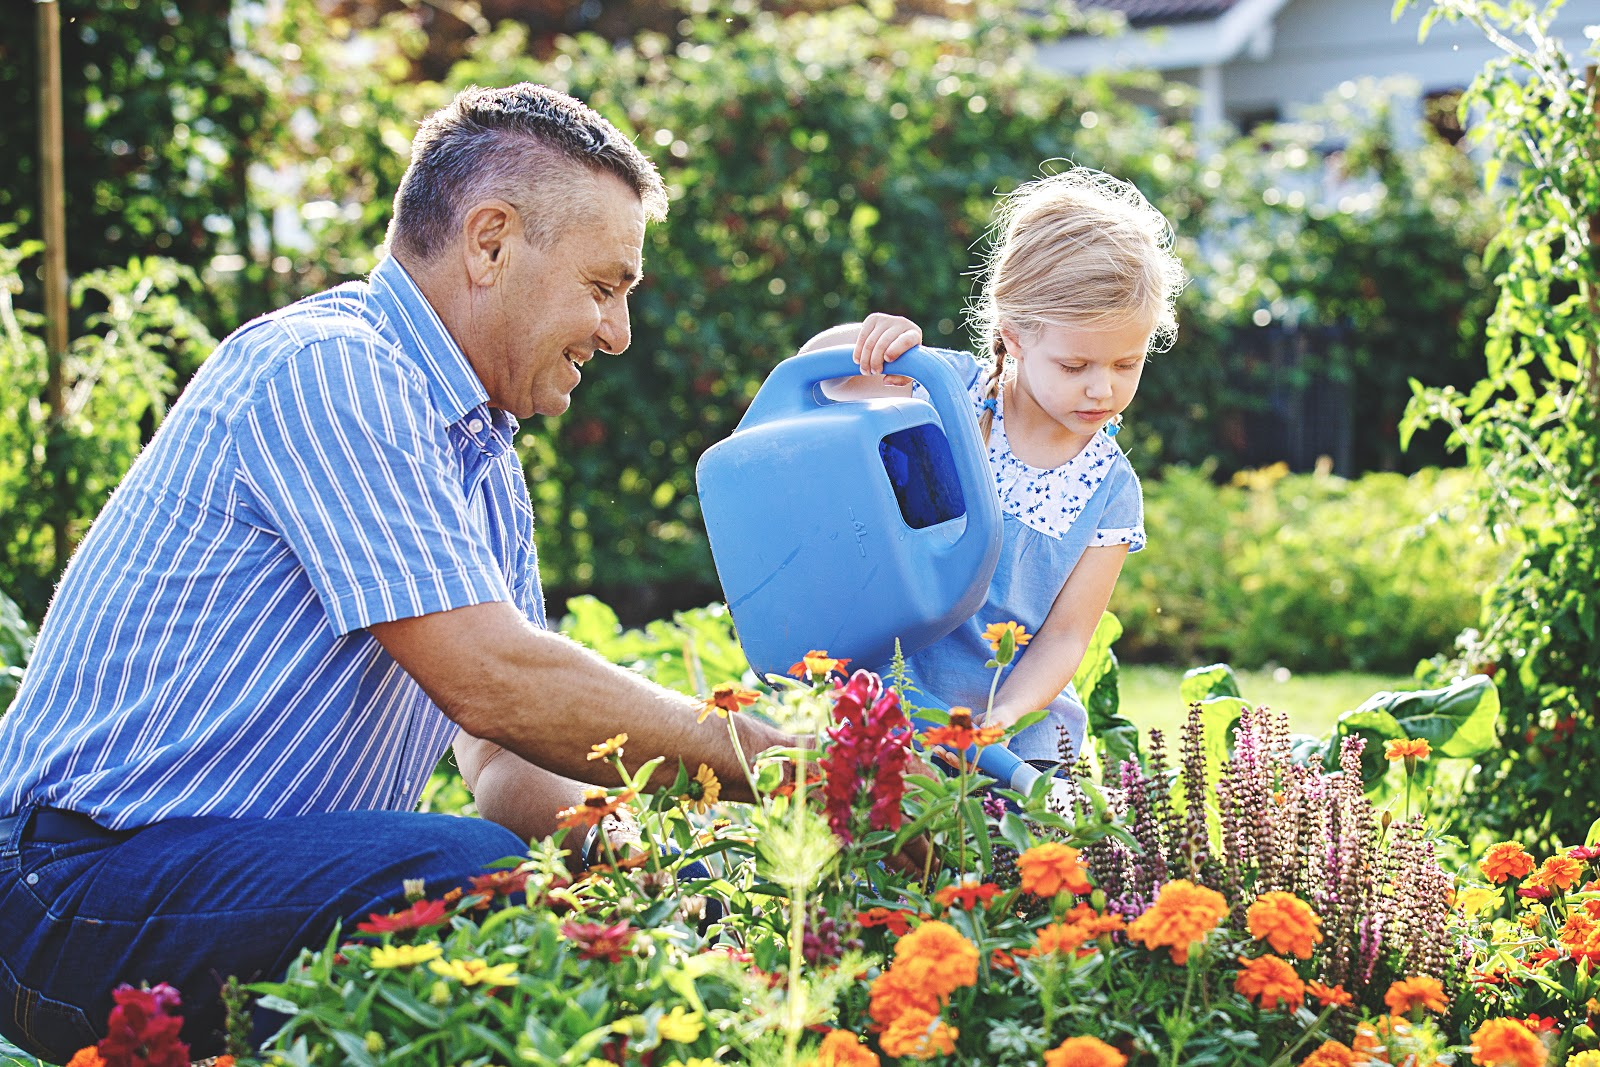 Father and daughter gardening together looking happy